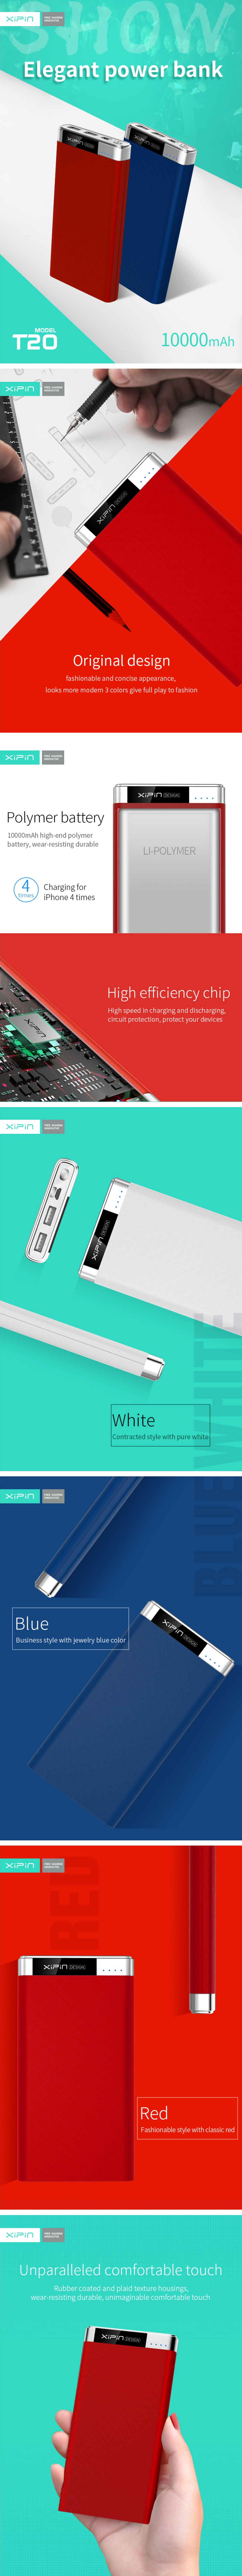 Xipin 10000mAh White Power Bank 5V2A Dual USB Output Powerbank Rubber-coat Housing and LED Display T20